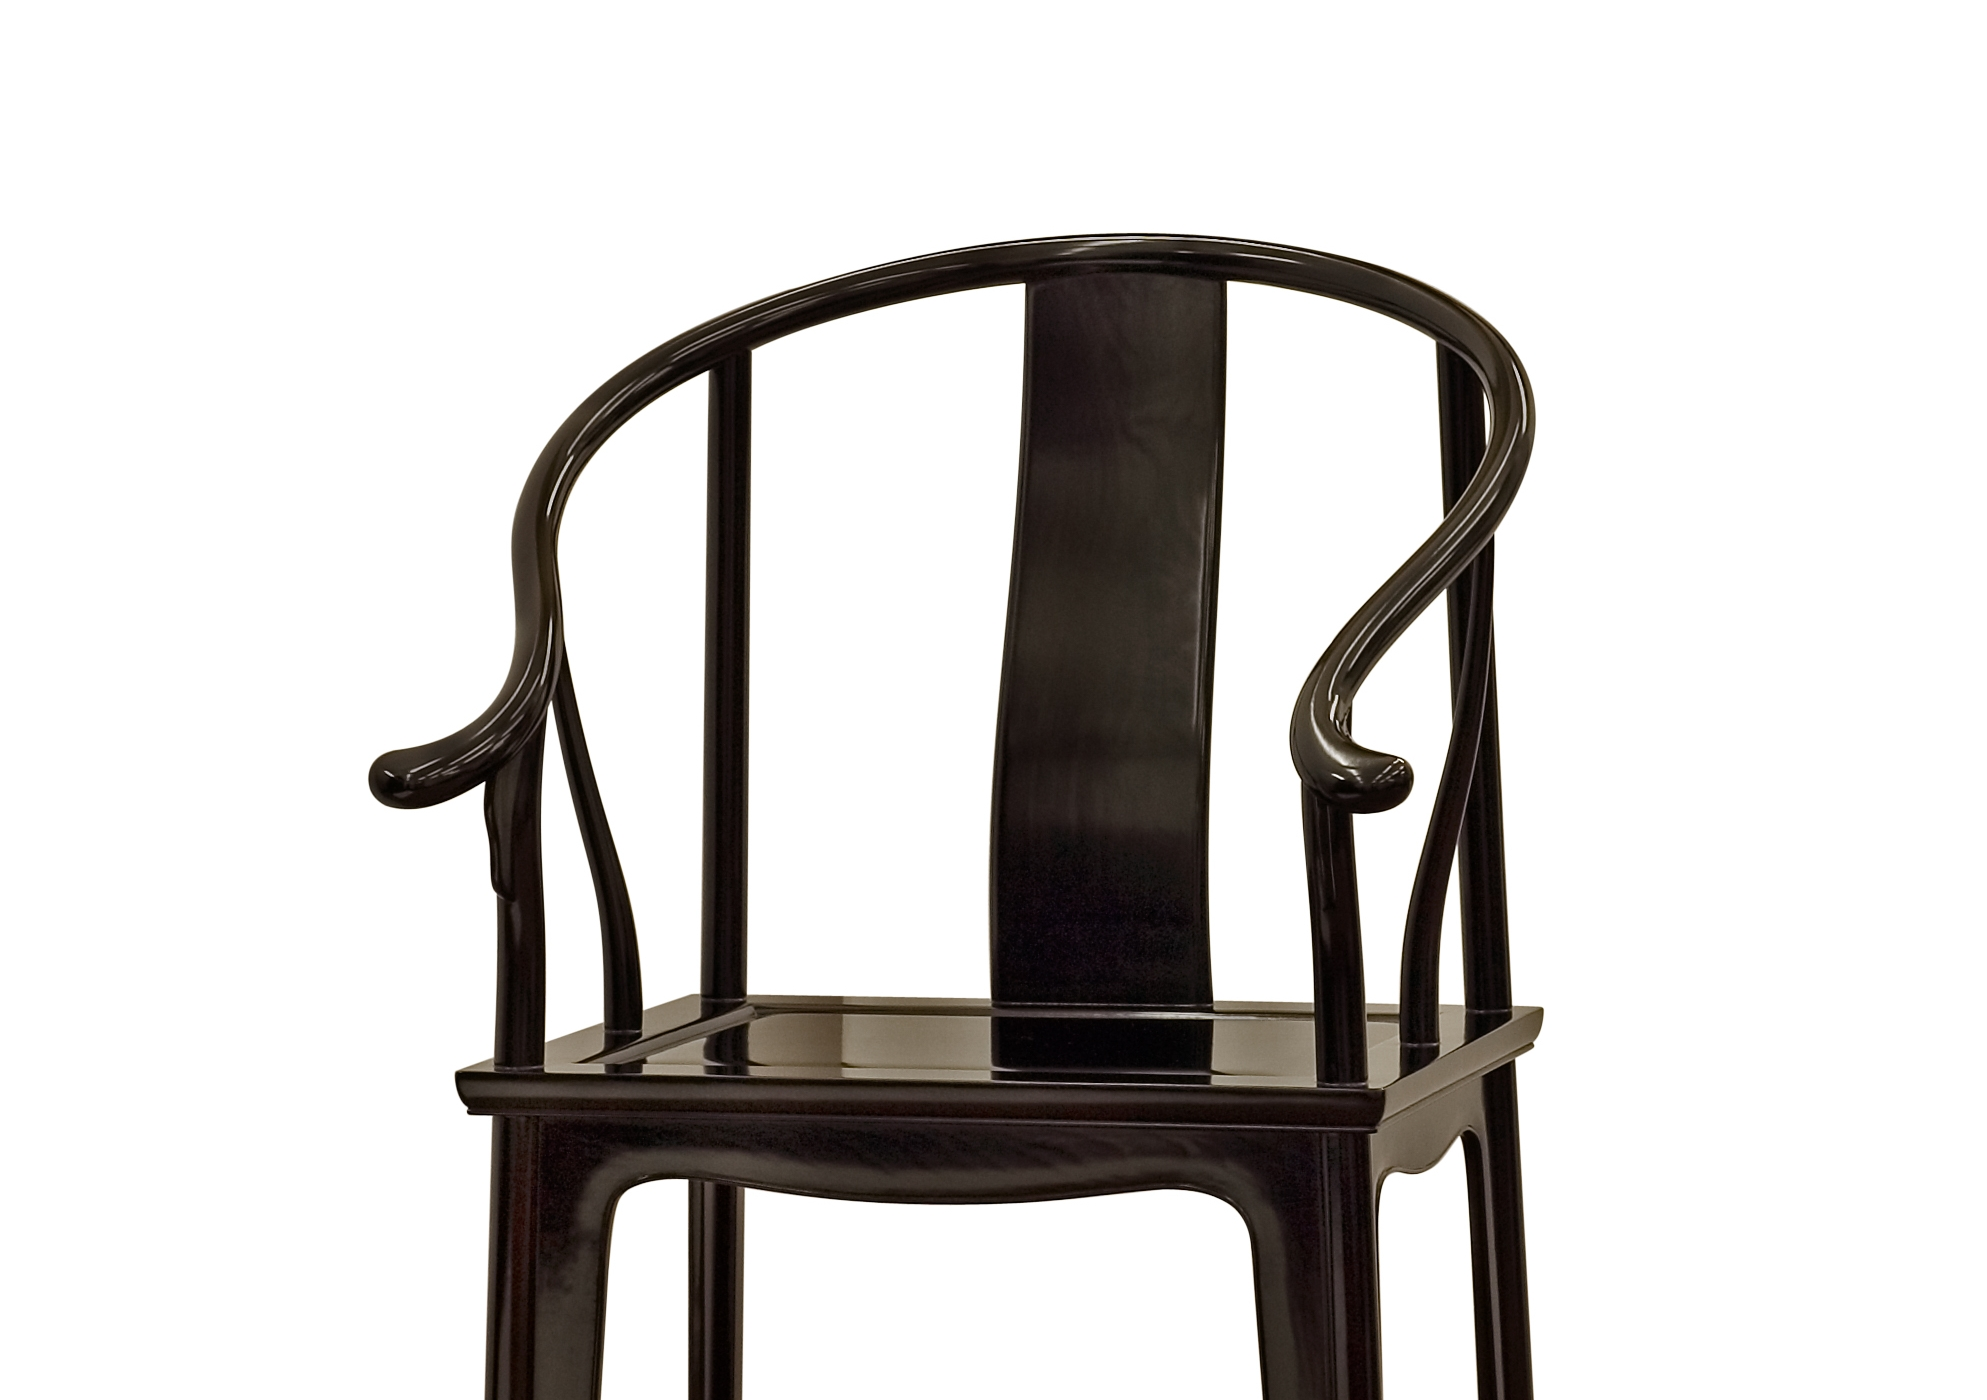 ....Ming Style Chinese furniture : Horseshoe armchair..明式中式家具: 圈椅....